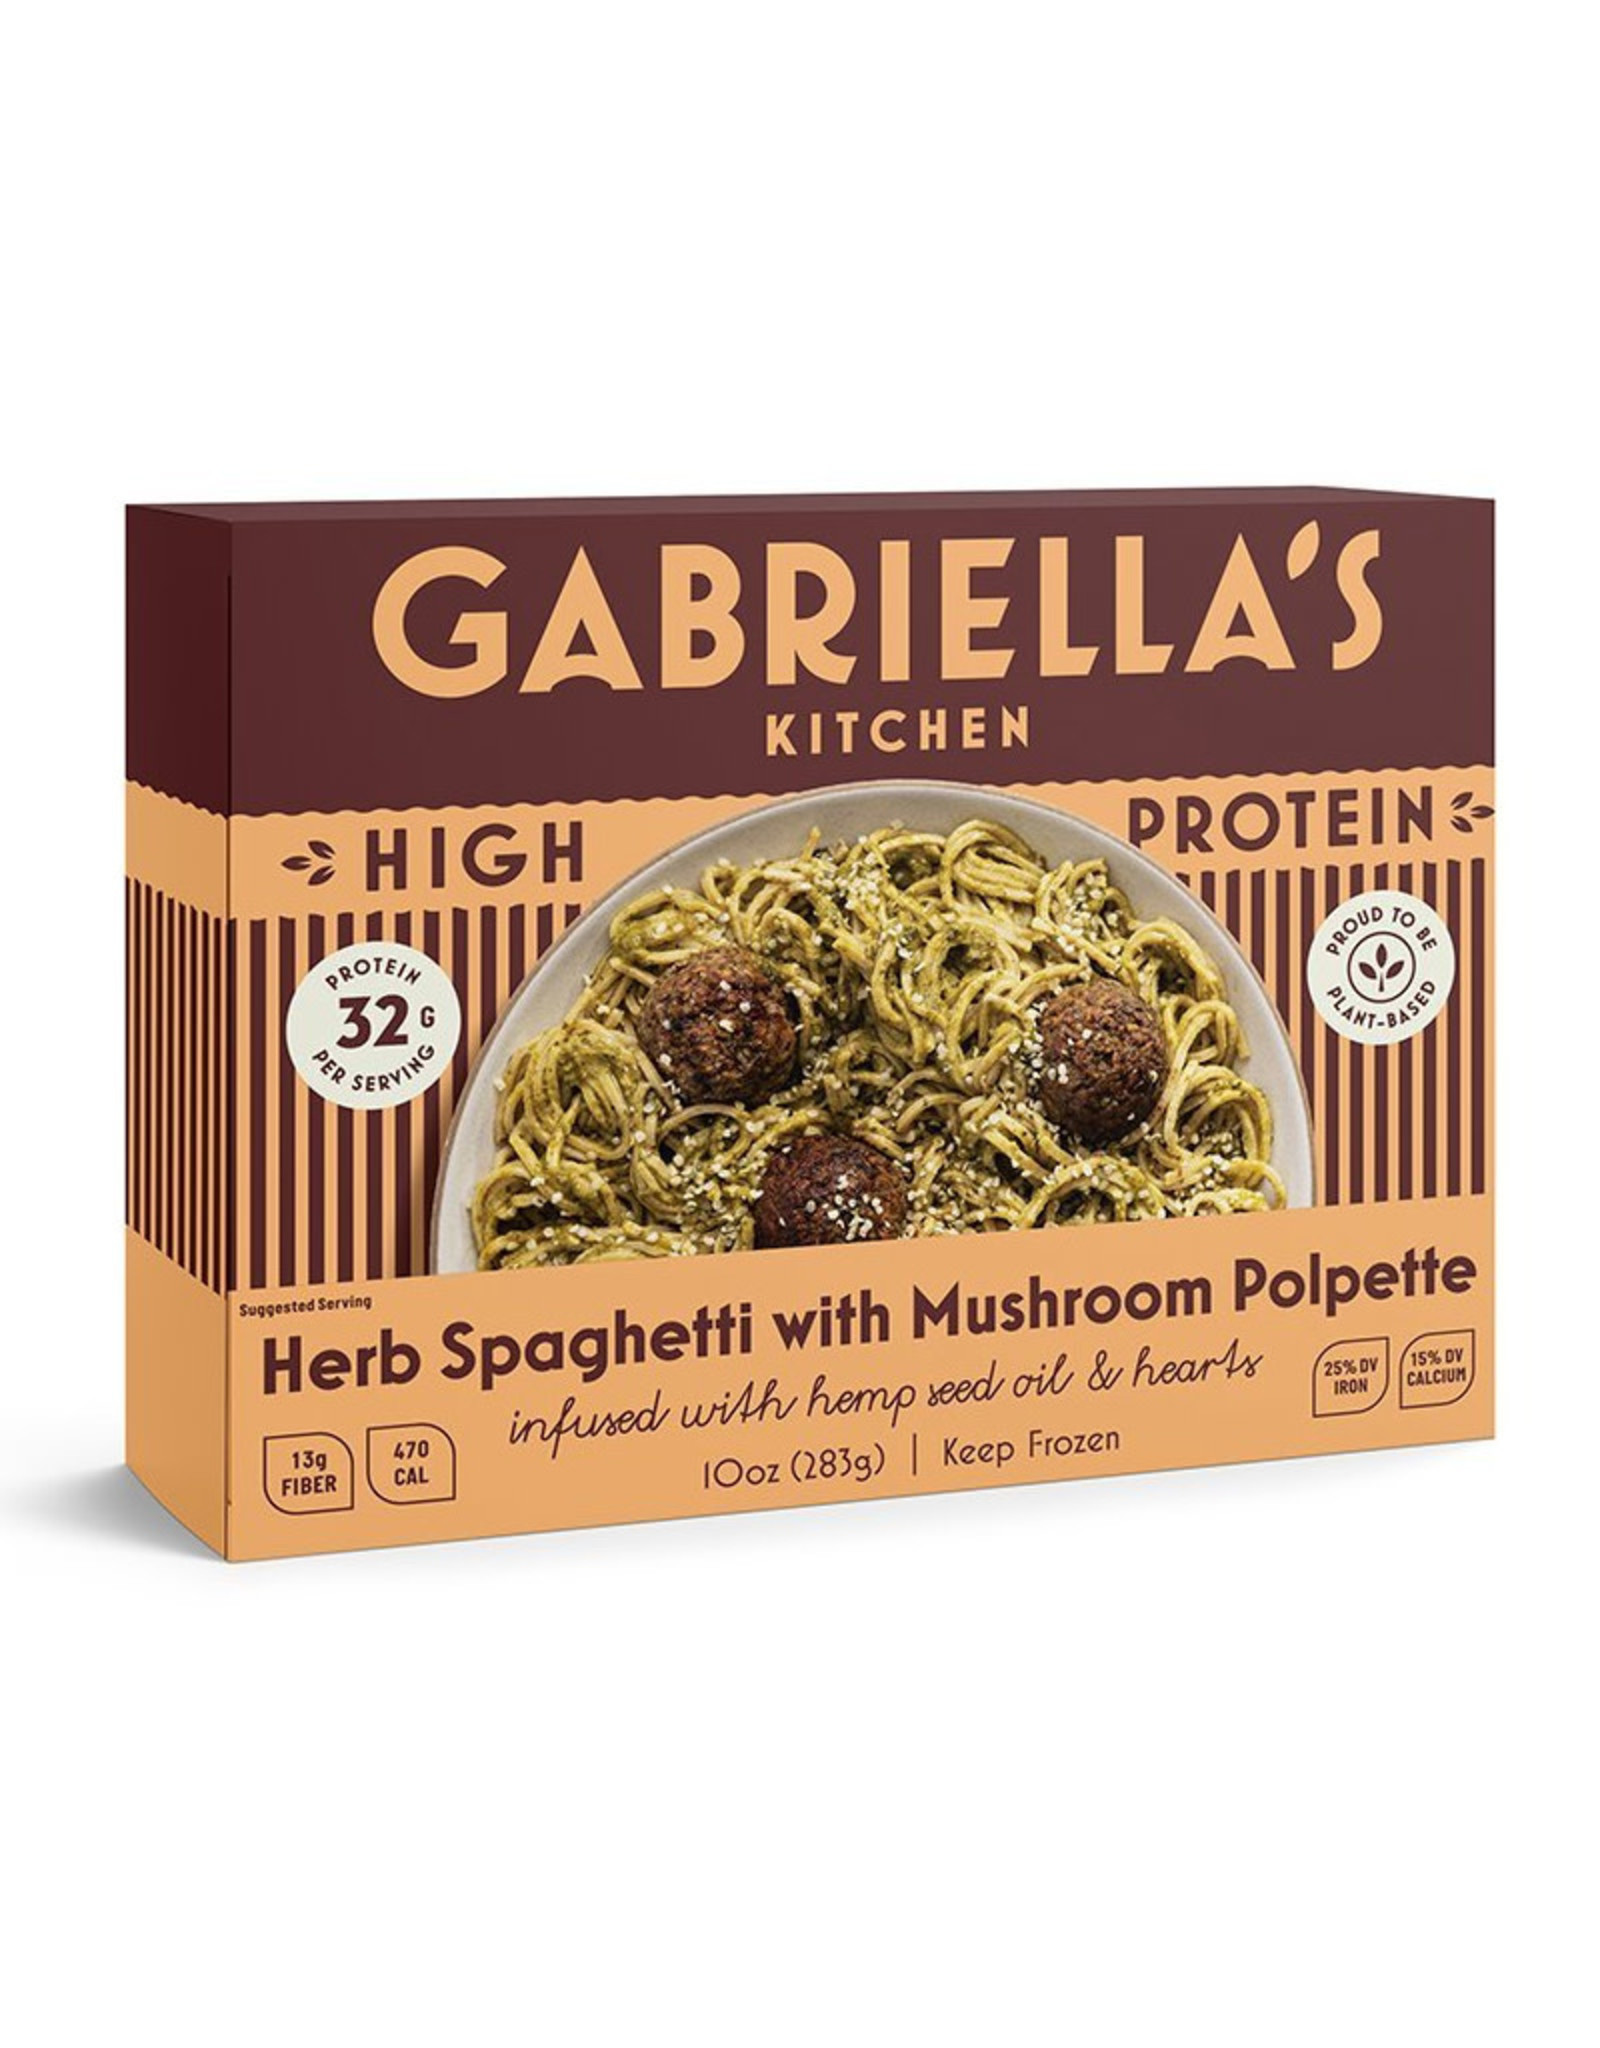 Gabriellas Kitchen Gabriellas Kitchen - High Protein, Spaghetti with Meatballs (300g)